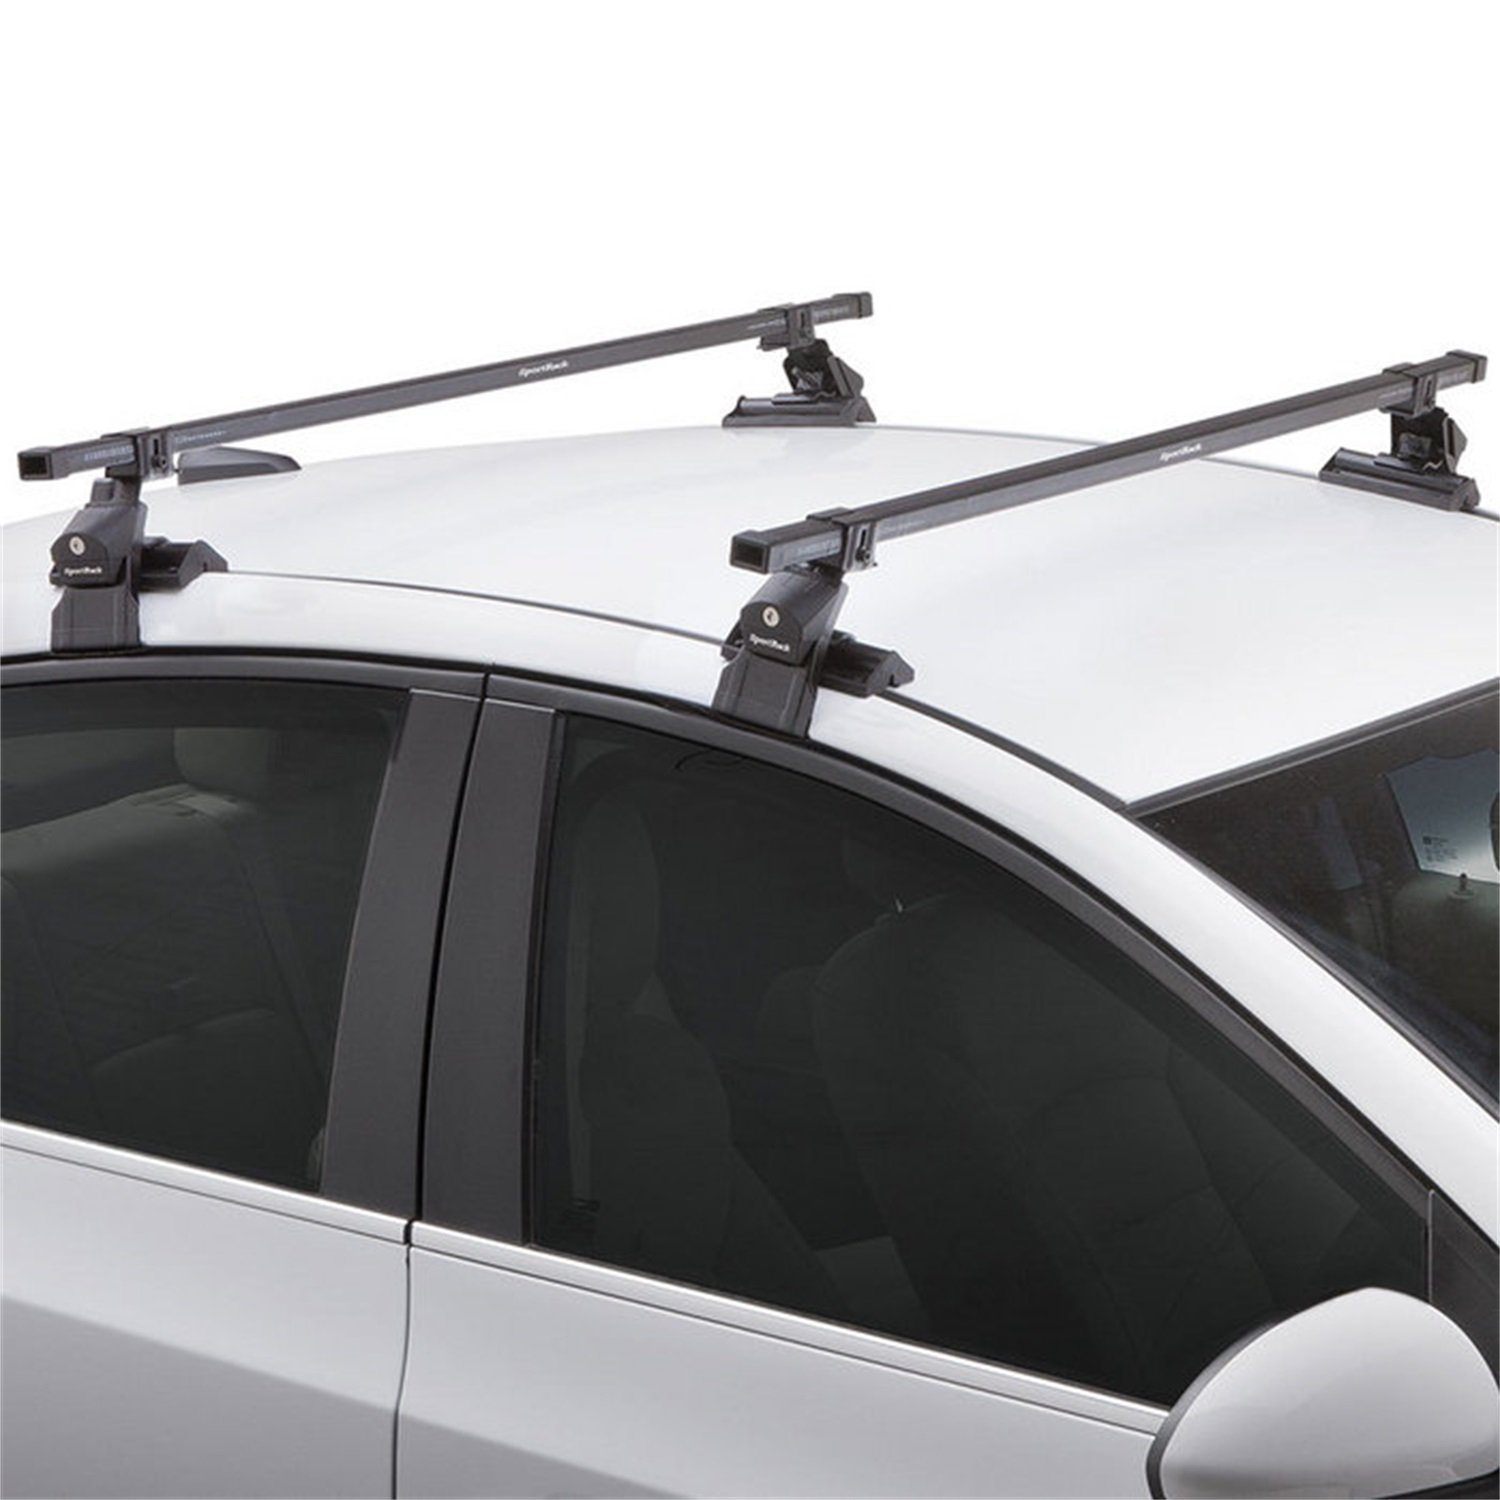 rack receivers bicycle hitch pro style thule for platform xt silver reboxed bike